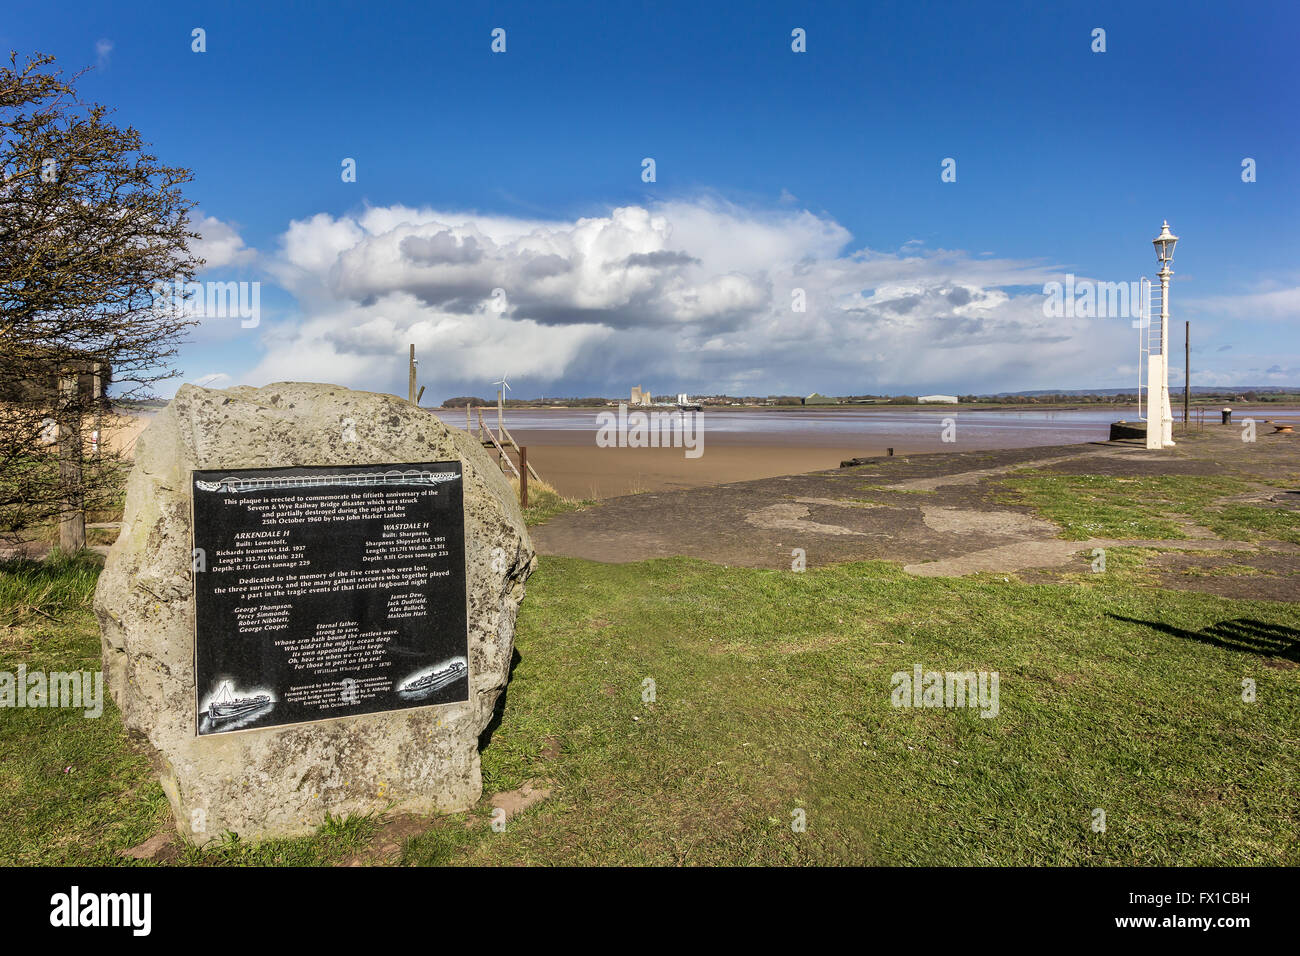 Commemorative Plaque to the fiftieth anniversary of the Severn and Wye Valley Bridge disaster Lydney Harbour, Gloucestershire - Stock Image